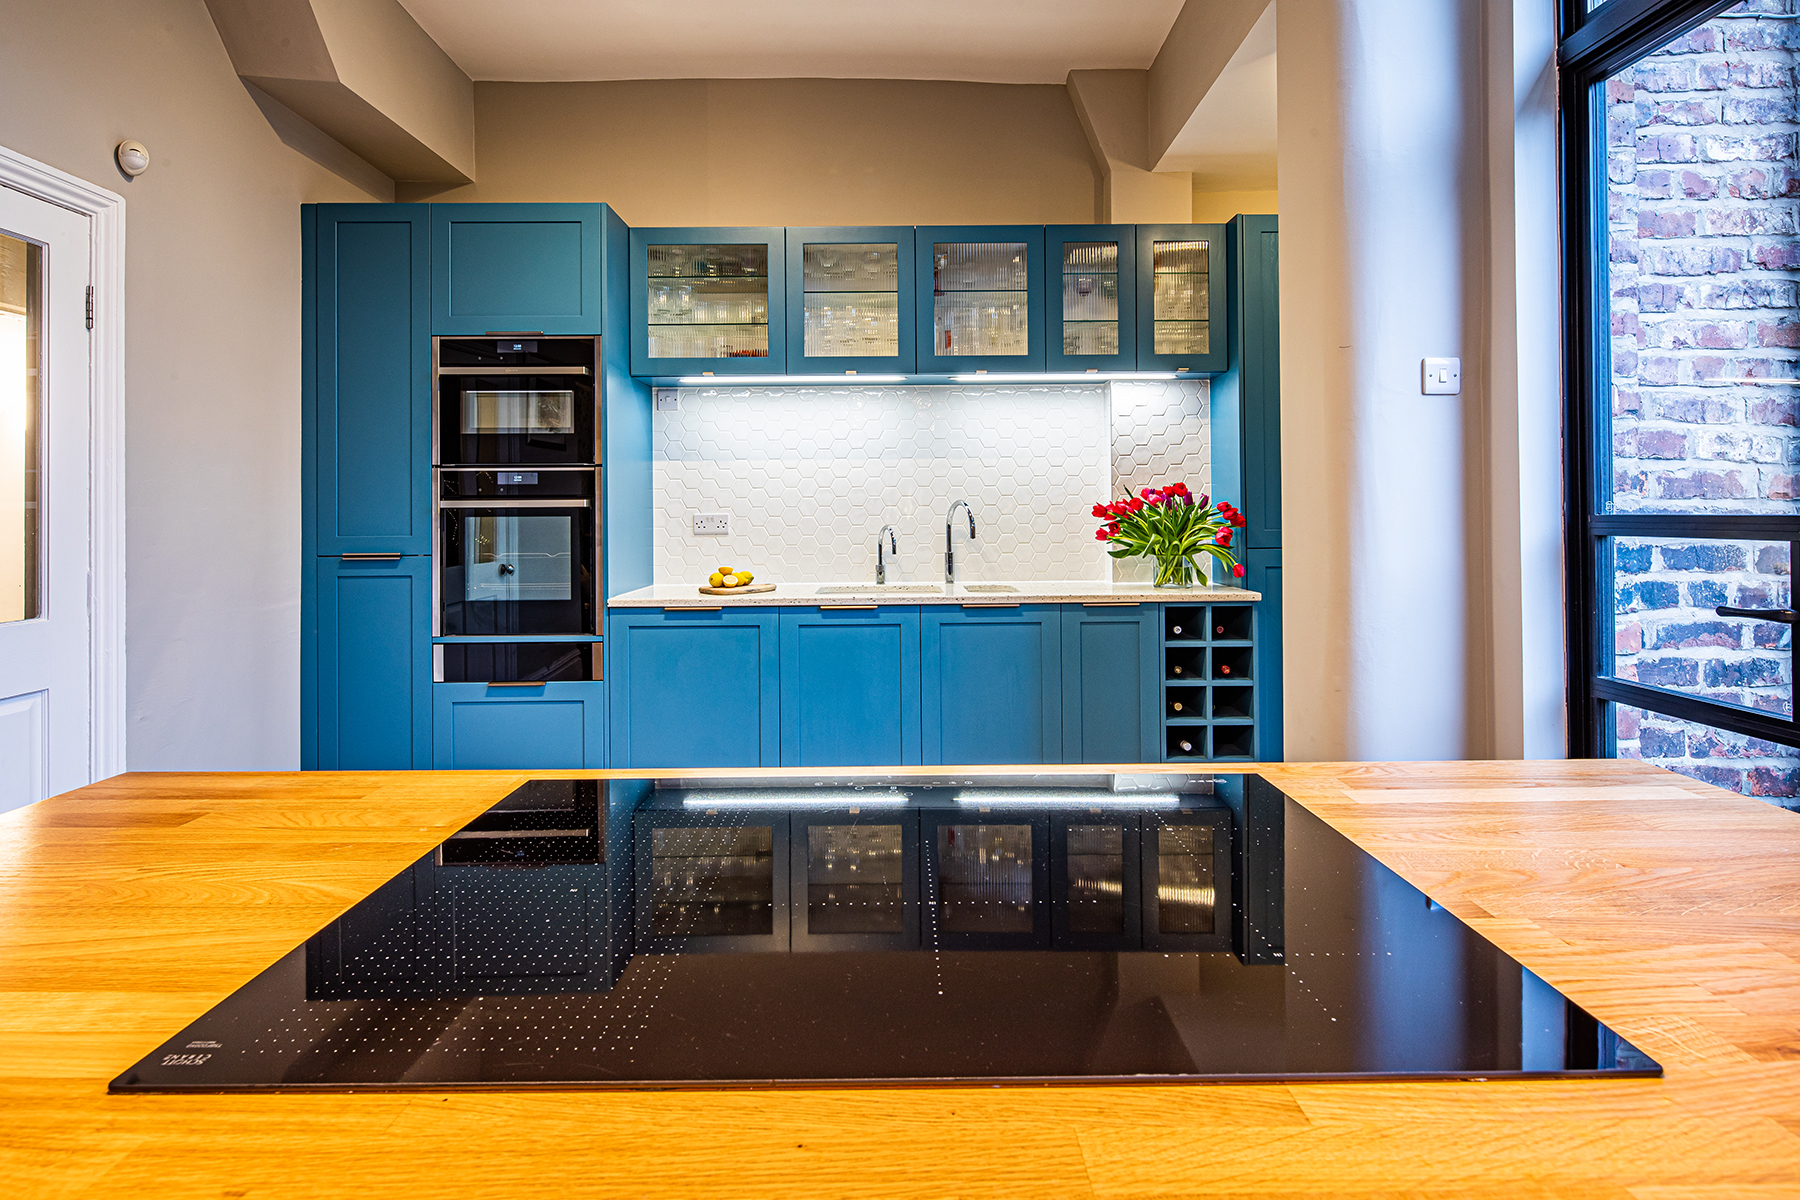 Manchester sustainable living kitchen with blue shaker doors and oak and recycled glass worktops